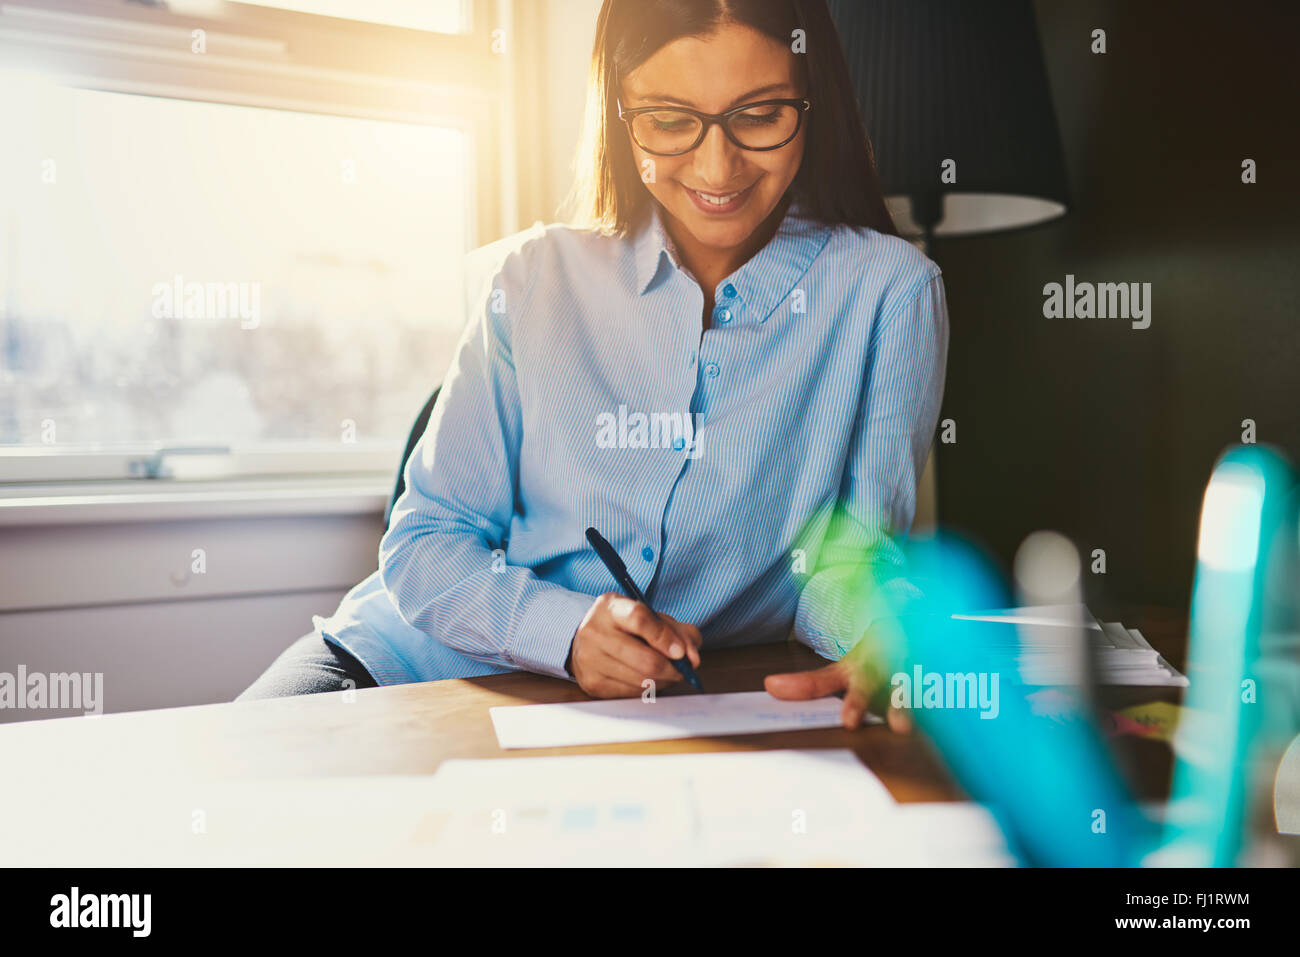 Business woman working at desk writing an address on a envelope - Stock Image